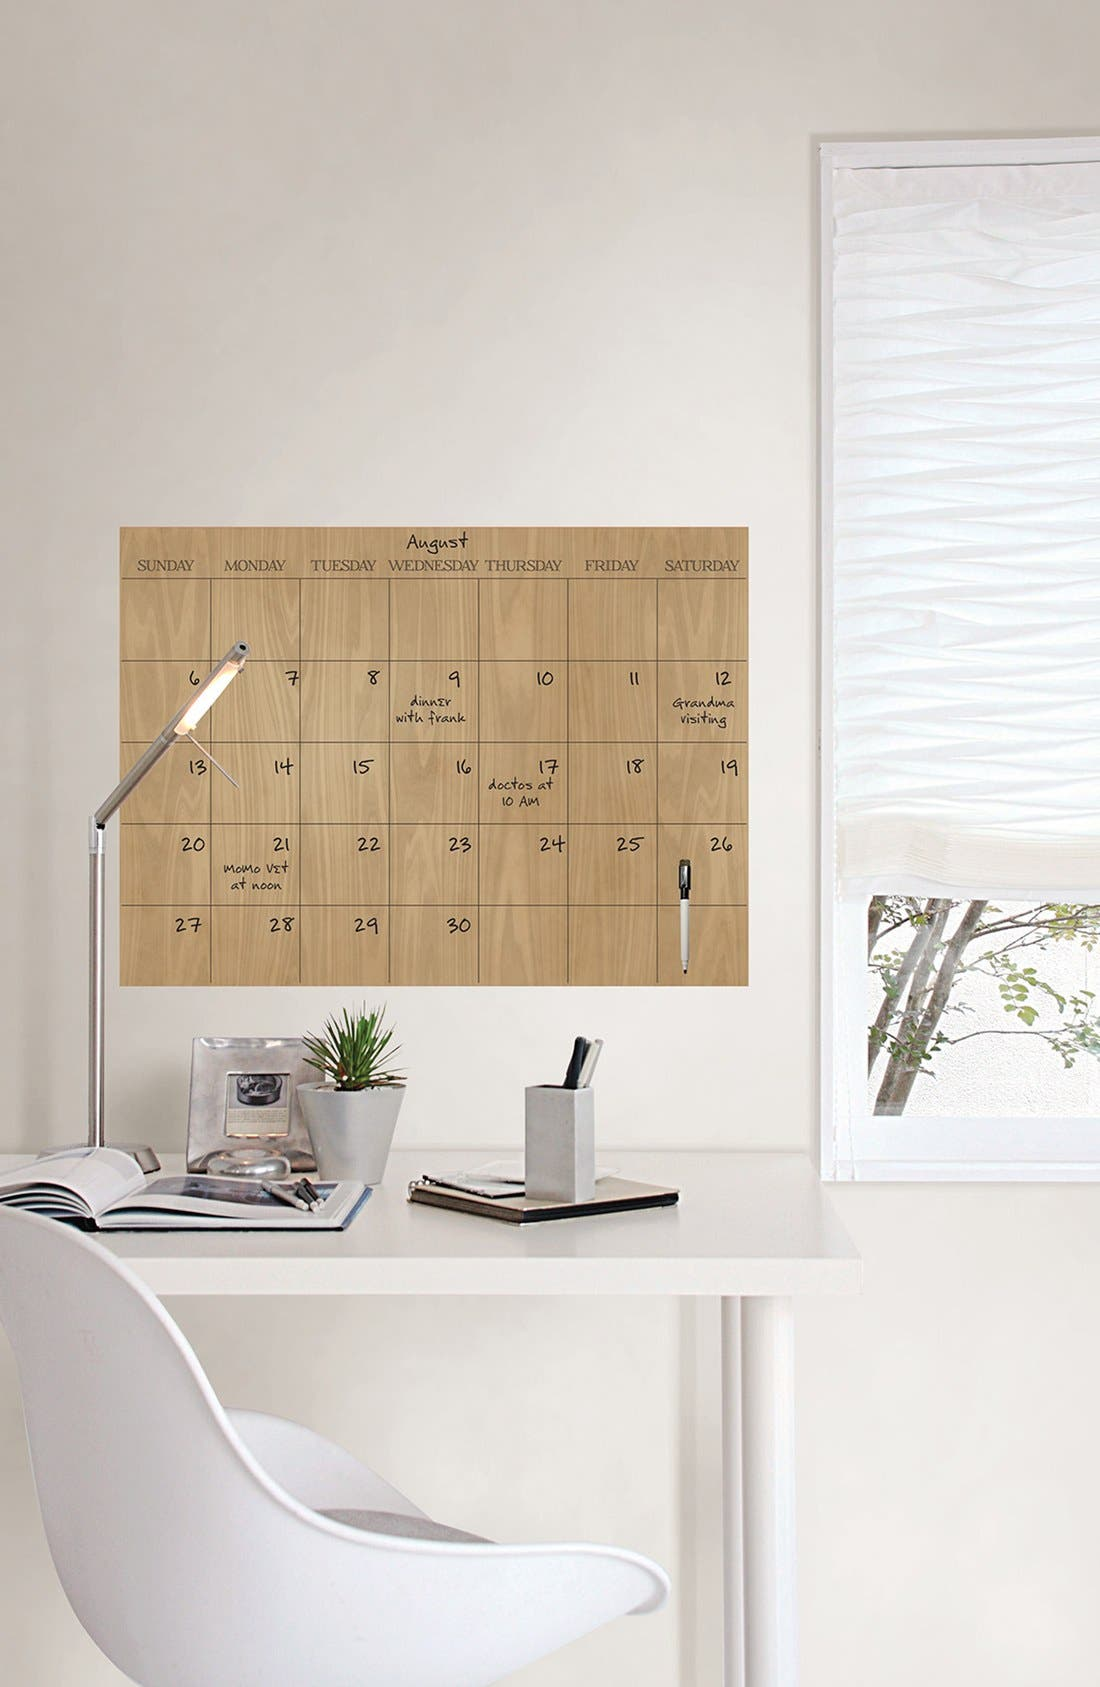 'Hardwood' Monthly Dry Erase Calendar,                             Alternate thumbnail 2, color,                             200